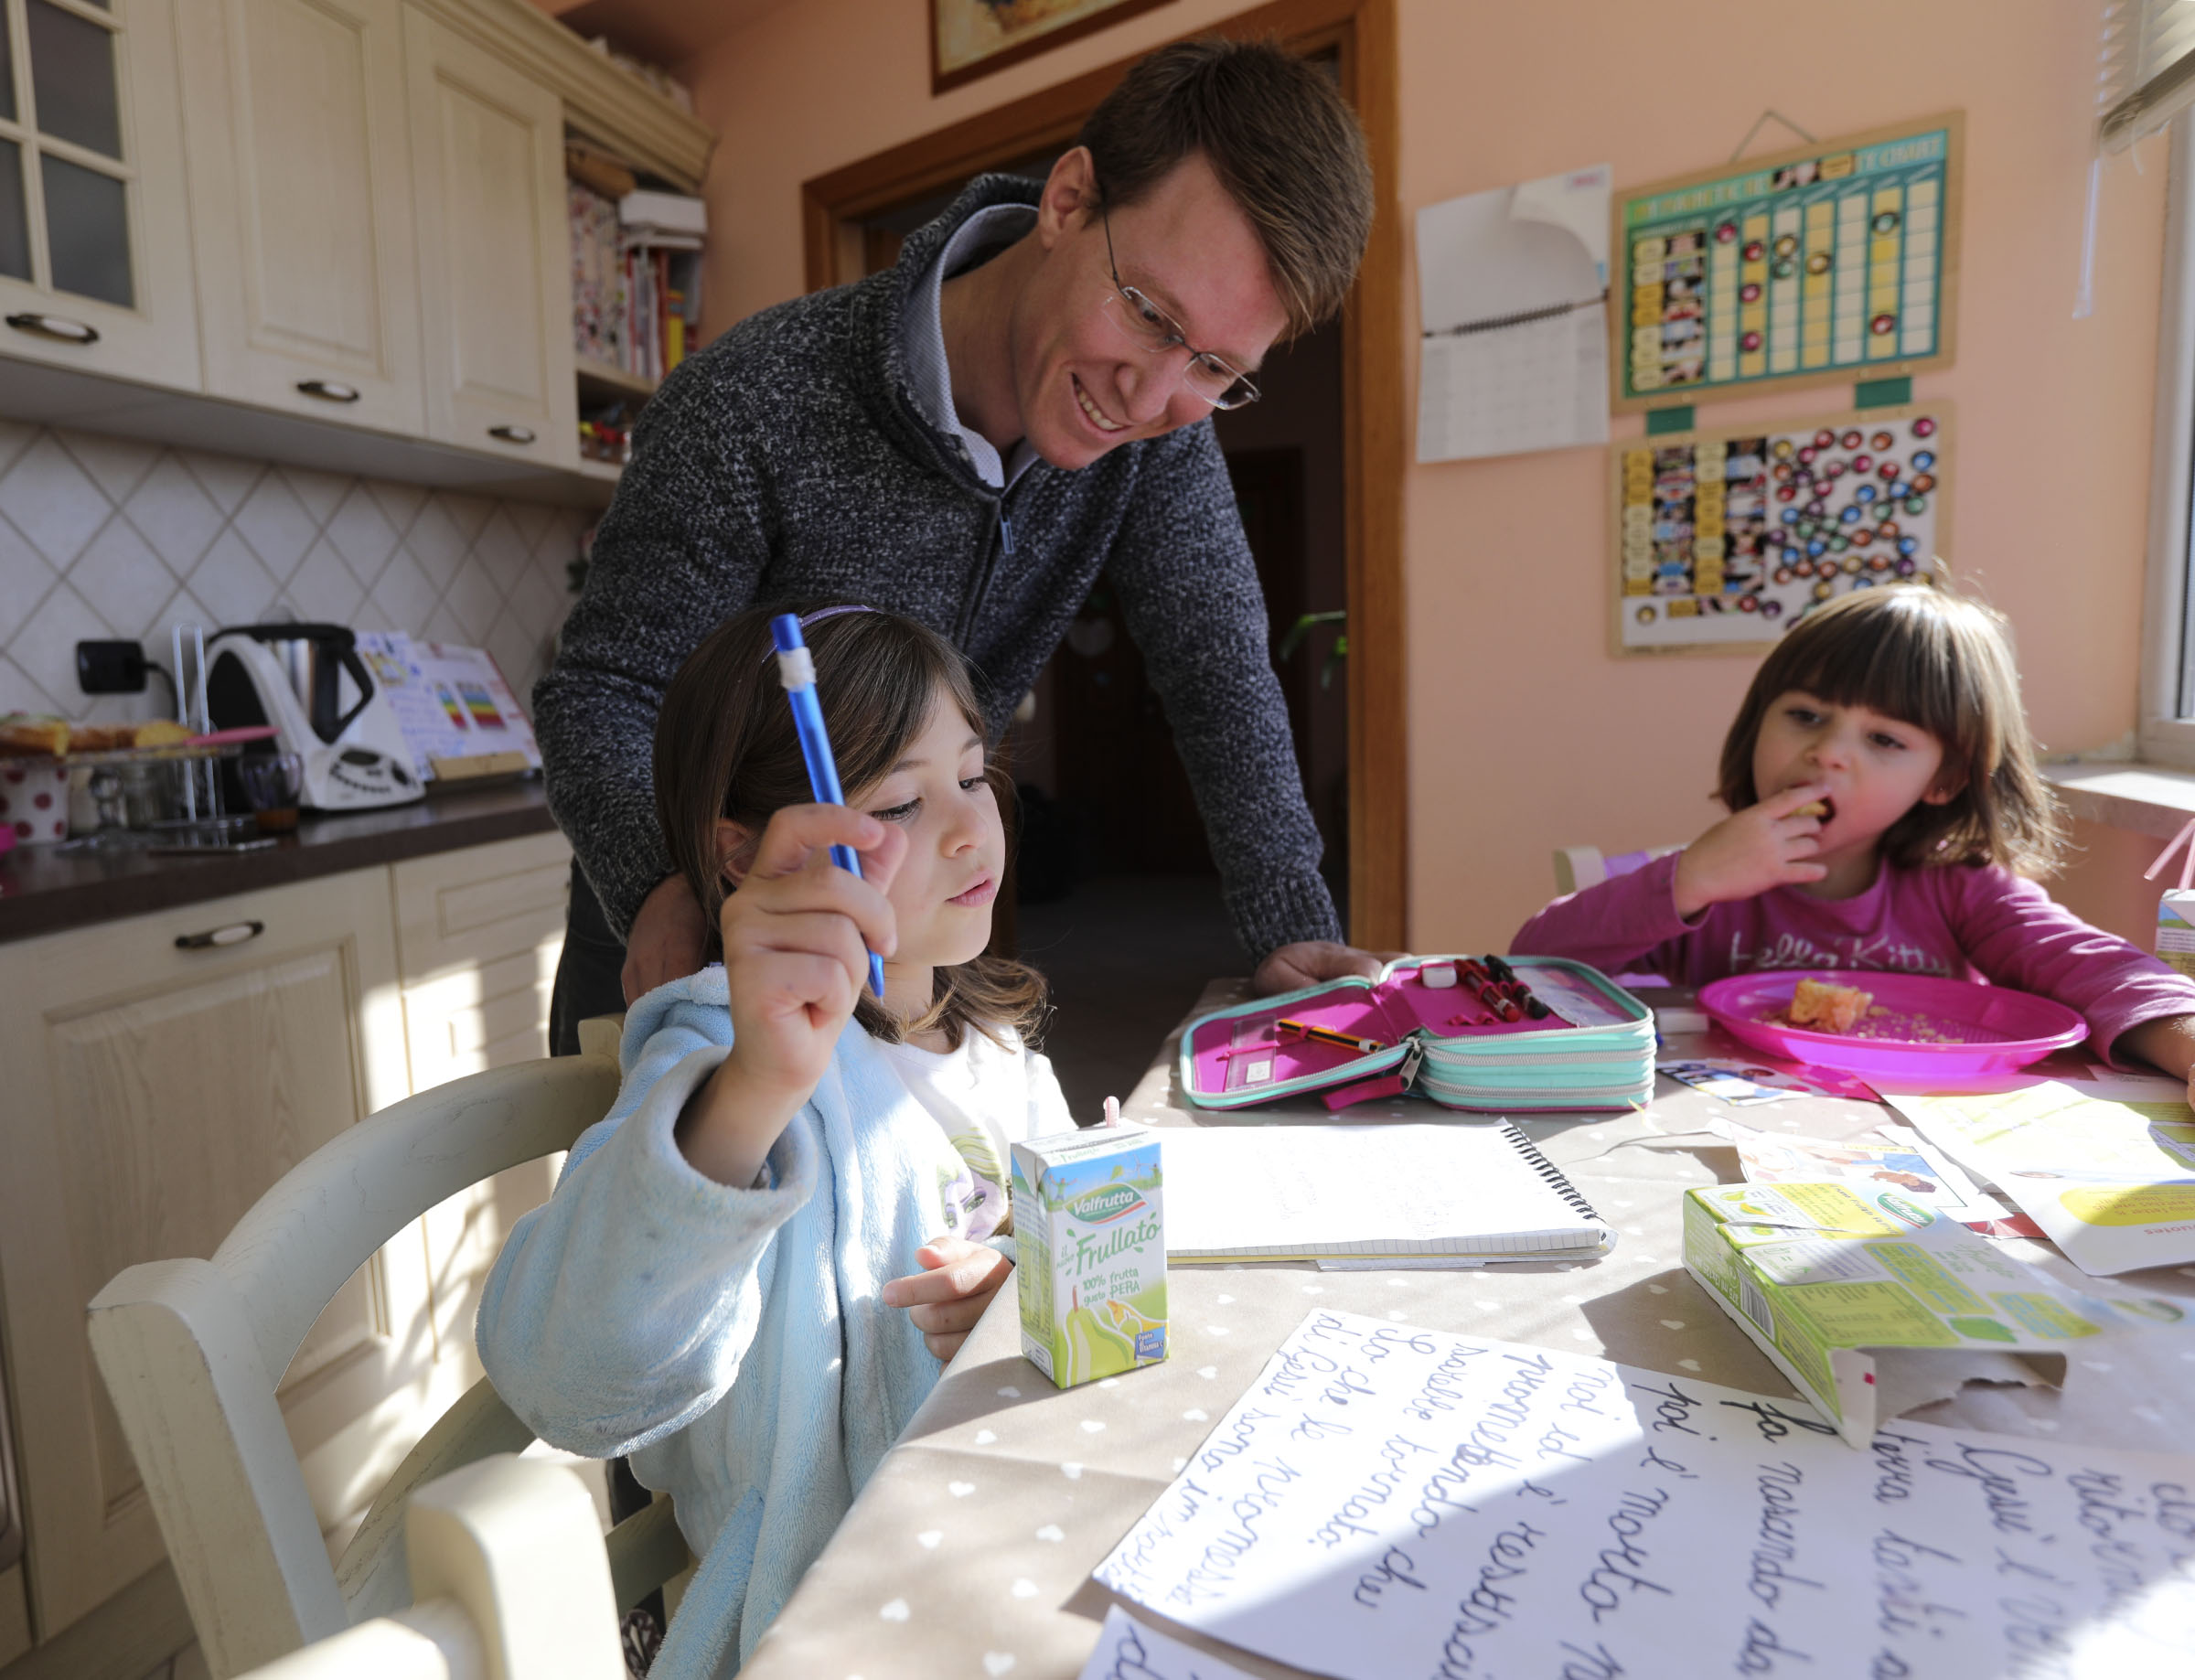 Emma Salerno, 7, prepares her Primary talk as her father, Daniele, and sister, Alice, 3, watch at home in Rome, Italy, on Sunday morning, Nov. 18, 2018.